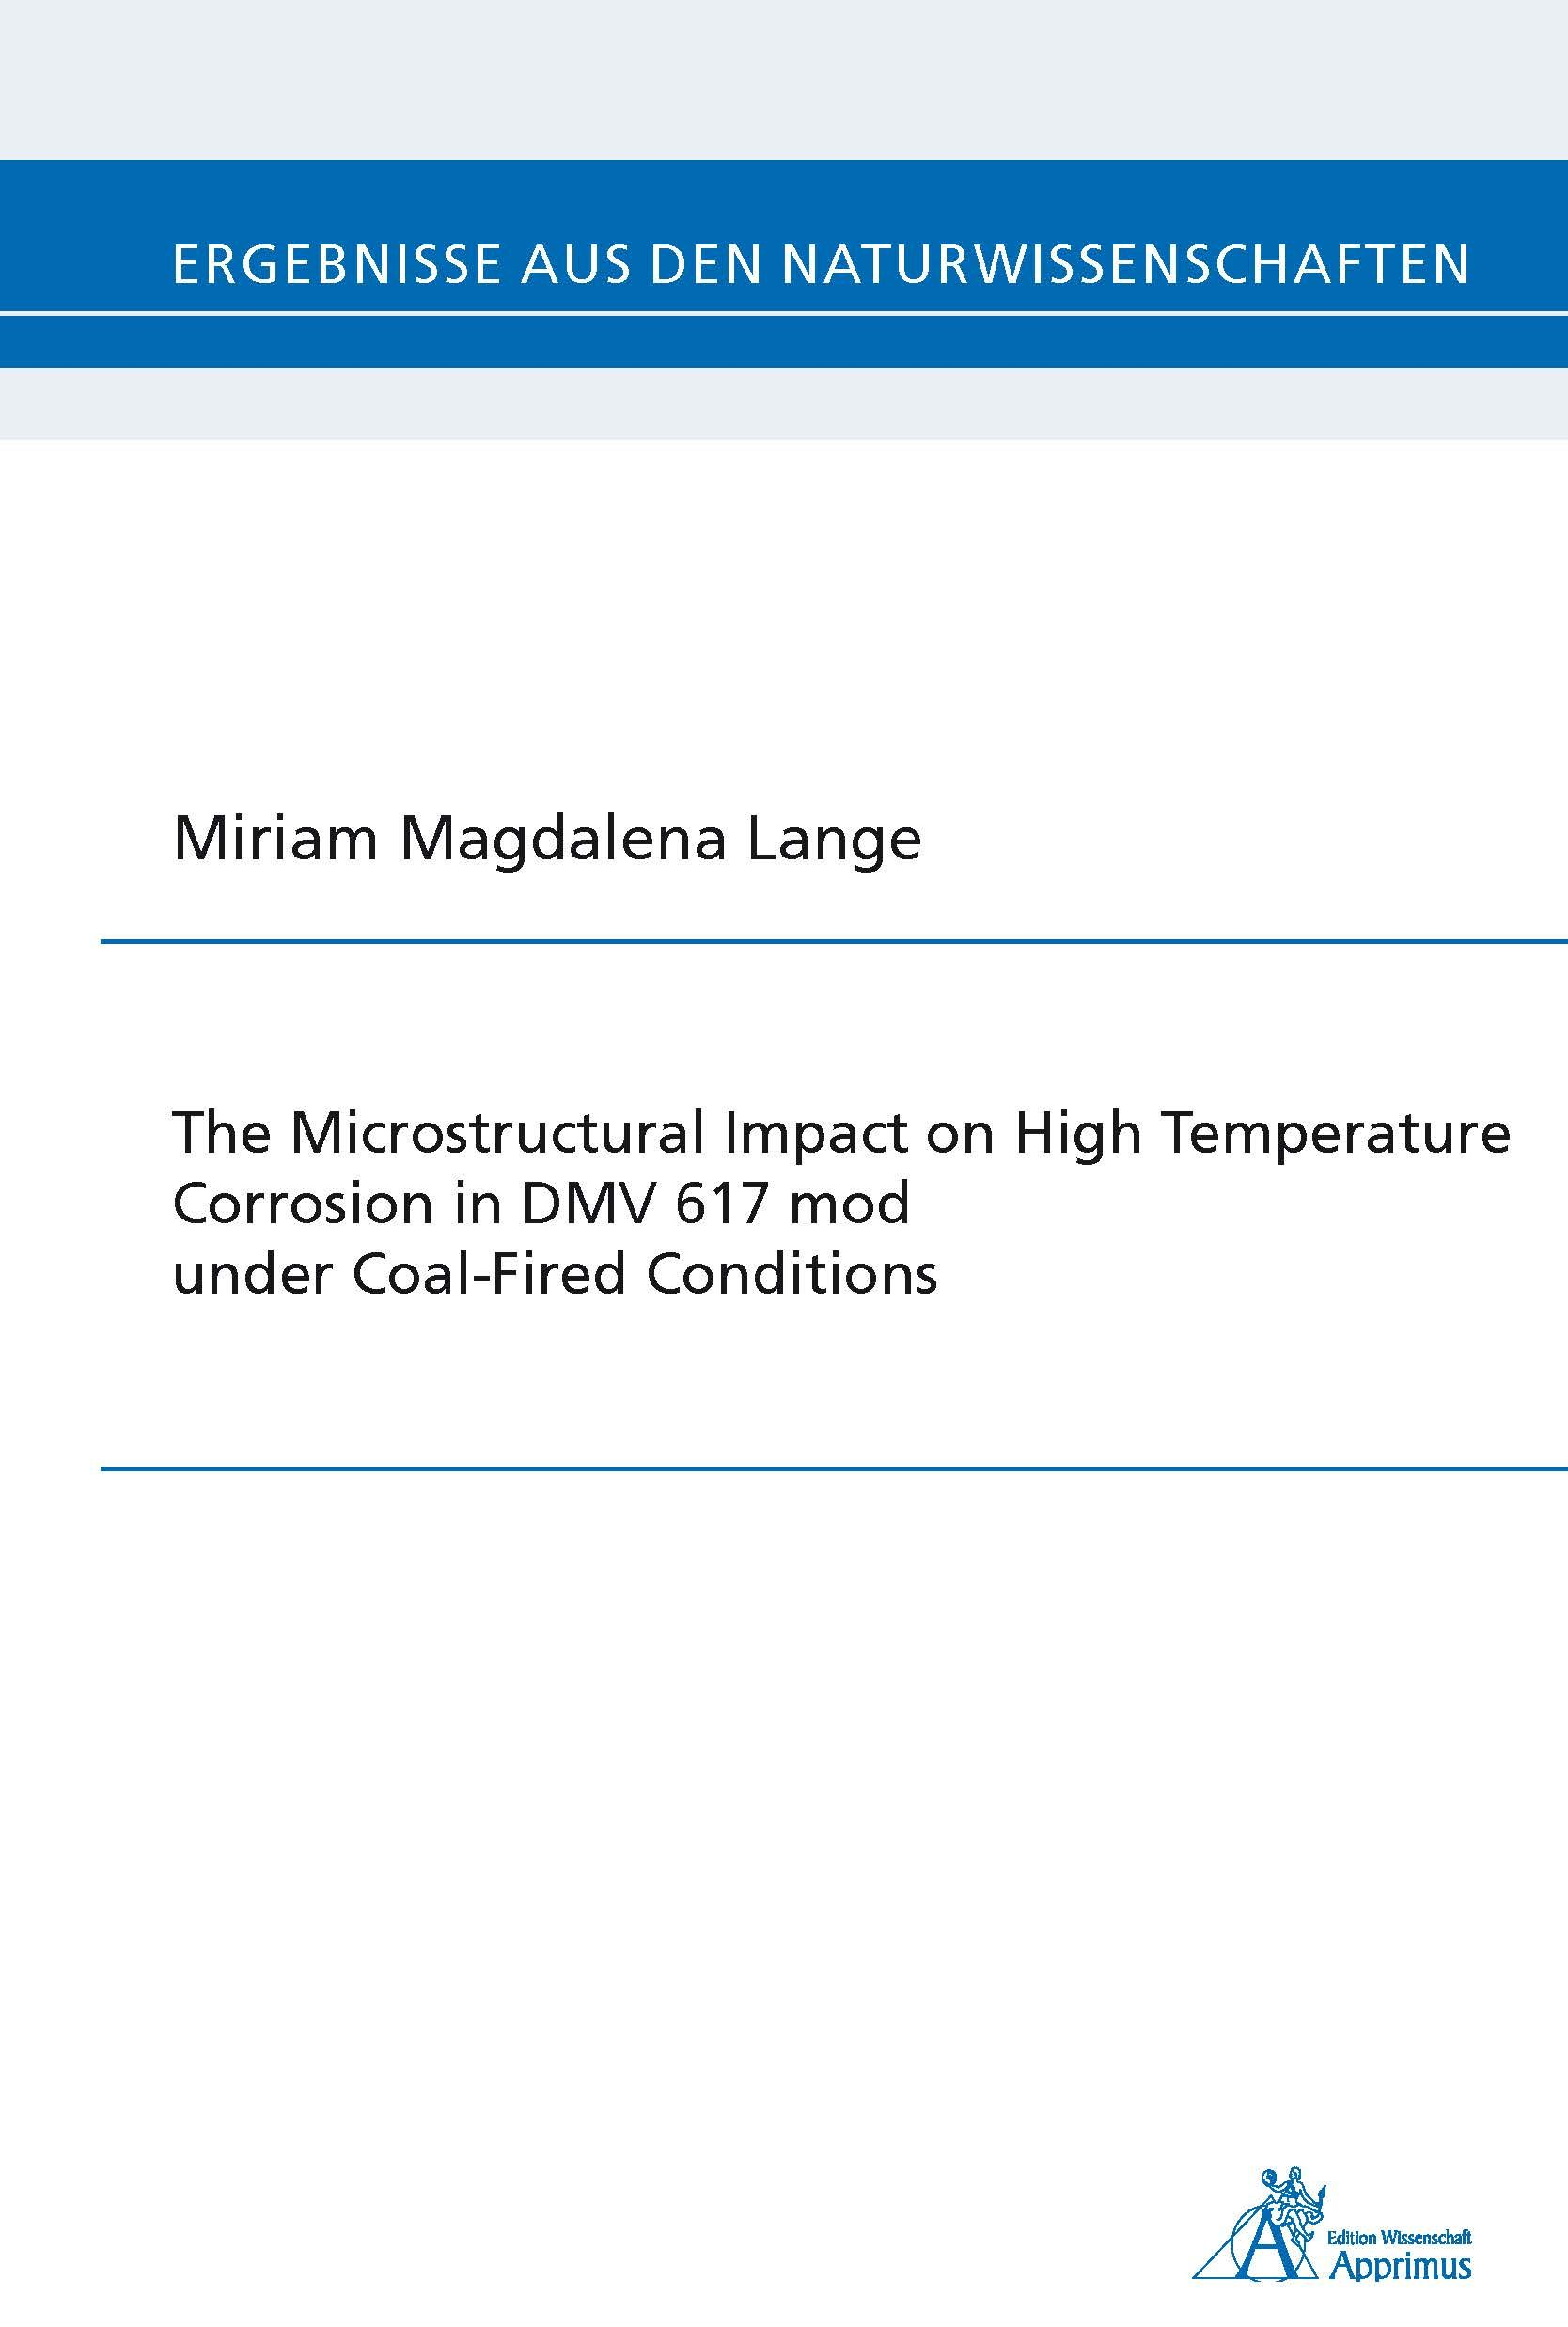 The Microstructural Impact on High Temperature Corrosion in DMV 617 mod under Coal-Fired Conditions